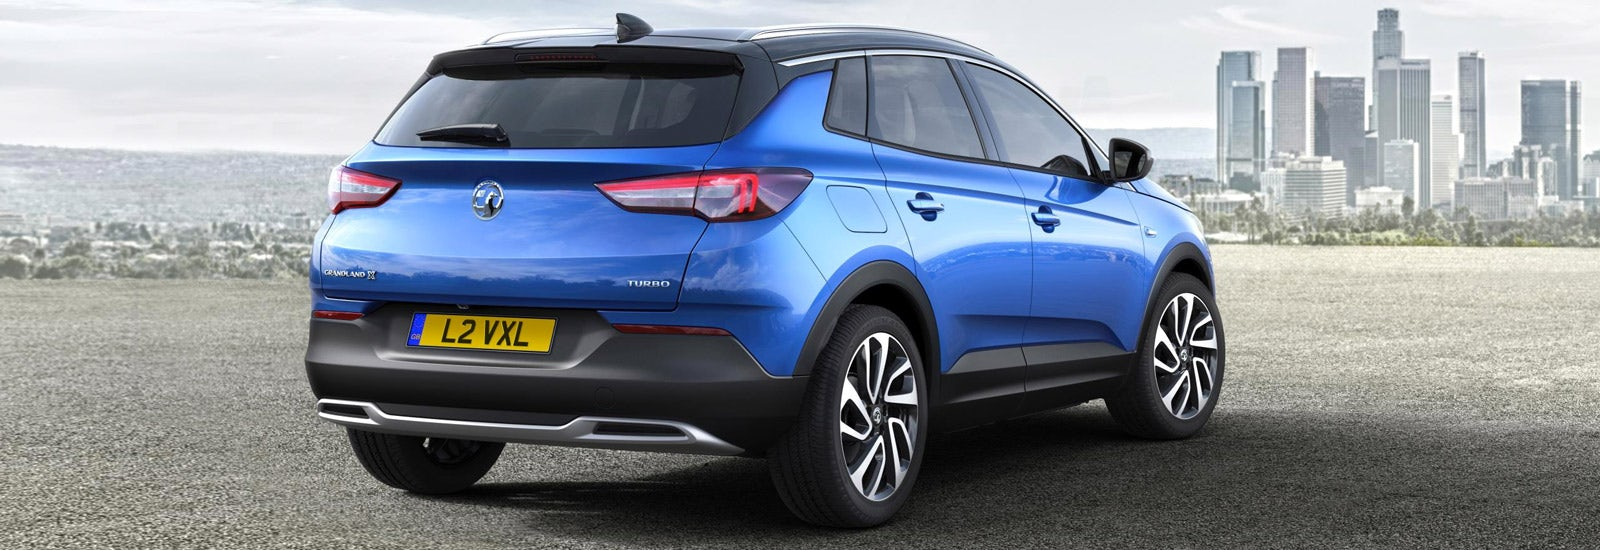 vauxhall crossland x review carwow autos post. Black Bedroom Furniture Sets. Home Design Ideas